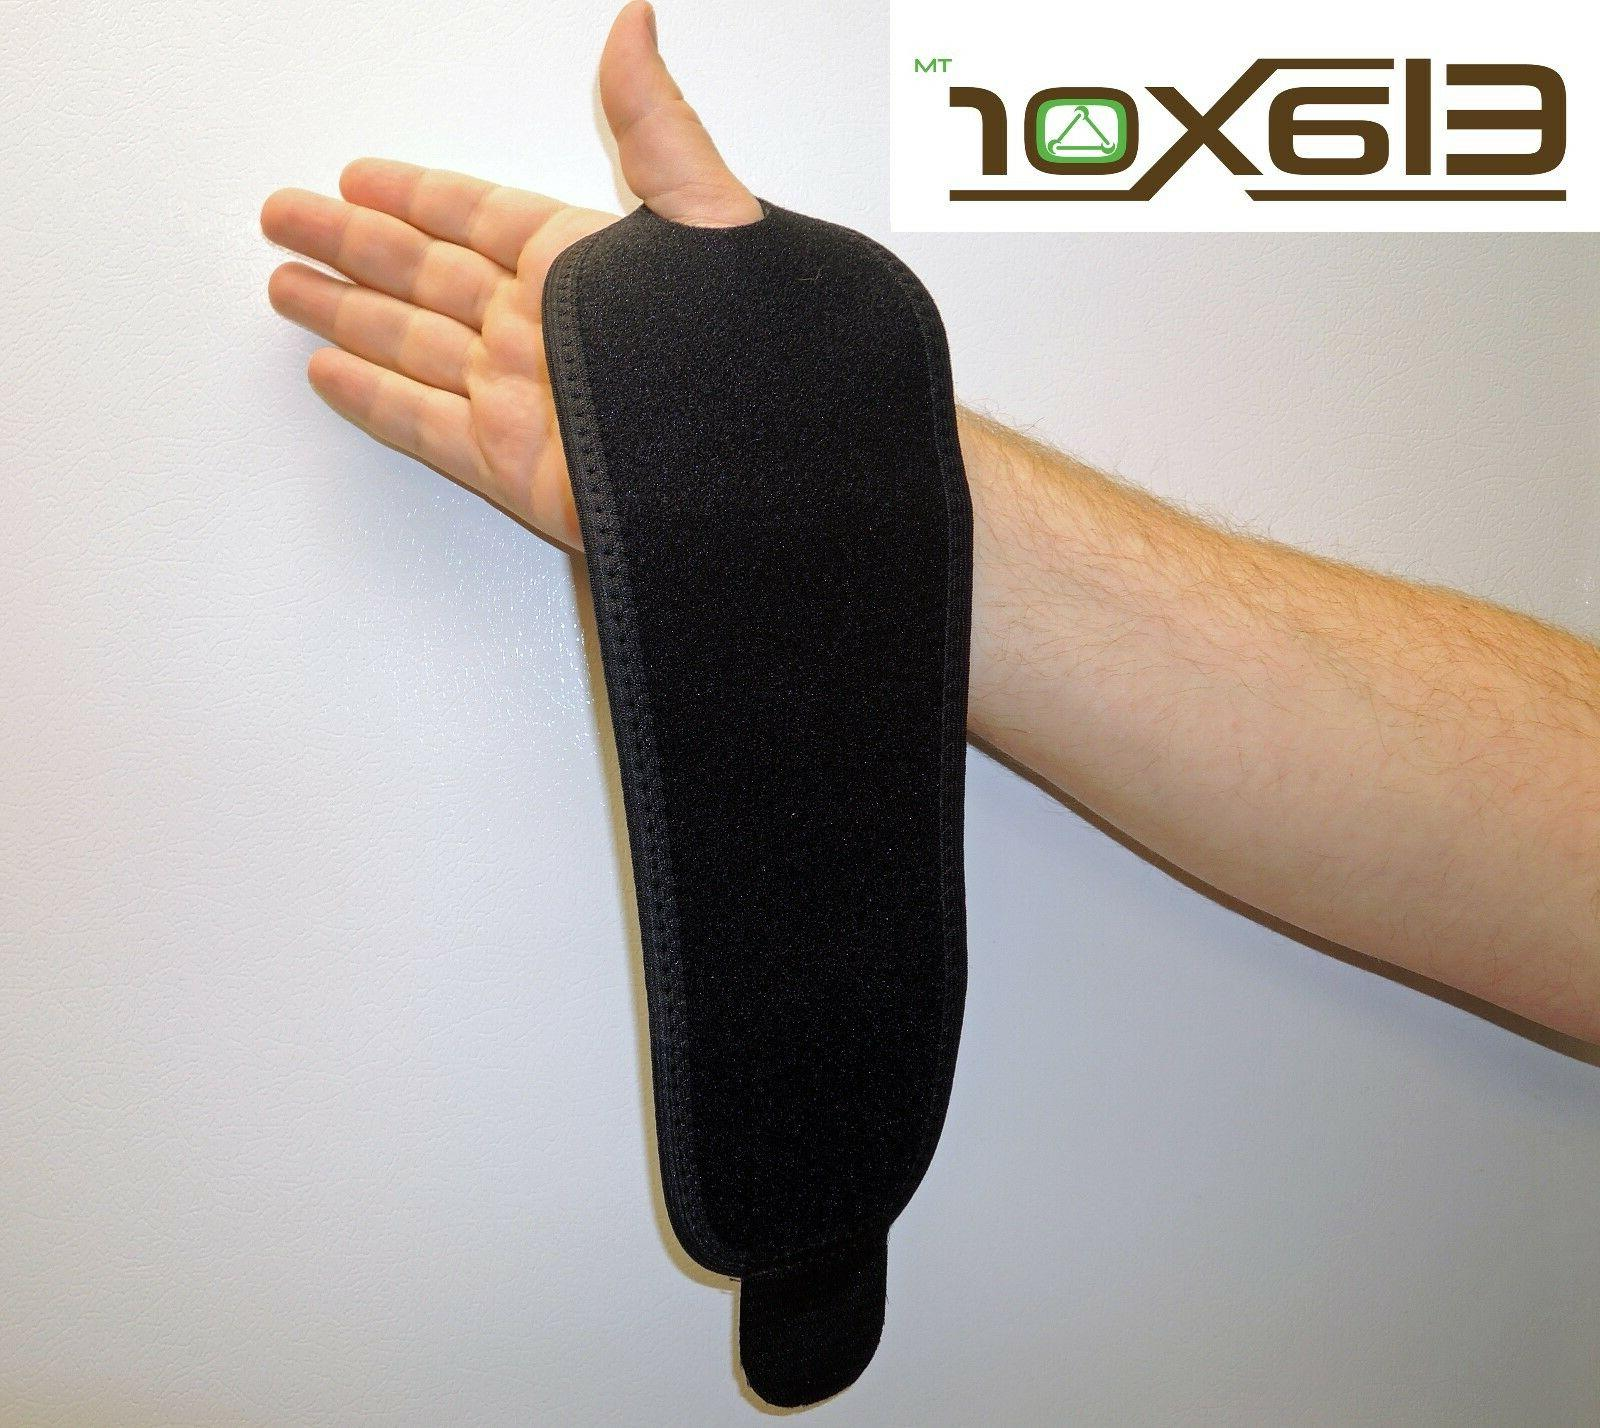 Wrist Brace Support Carpal Tunnel Splint Black Hand Strap Size